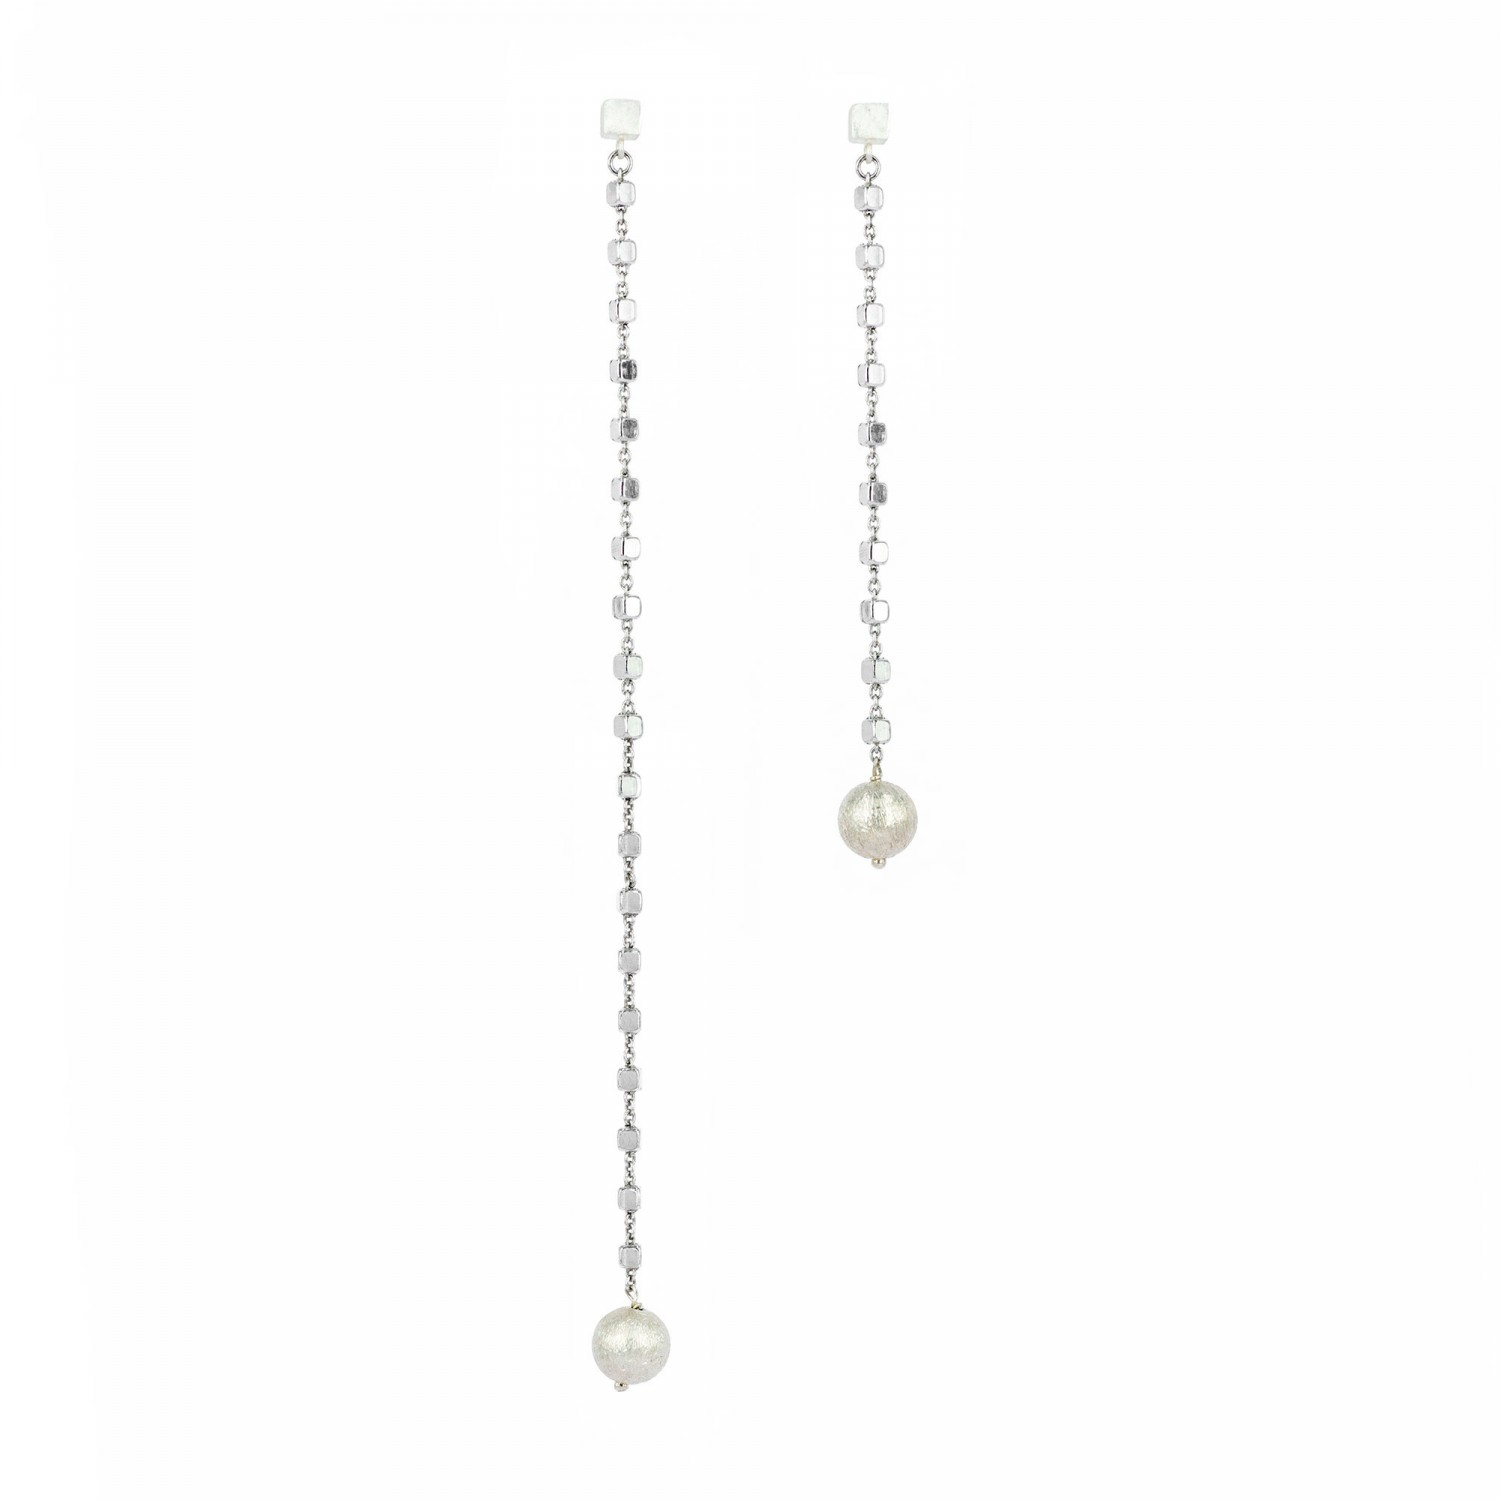 Tiny Cubes and Sphere Long Earrings 1